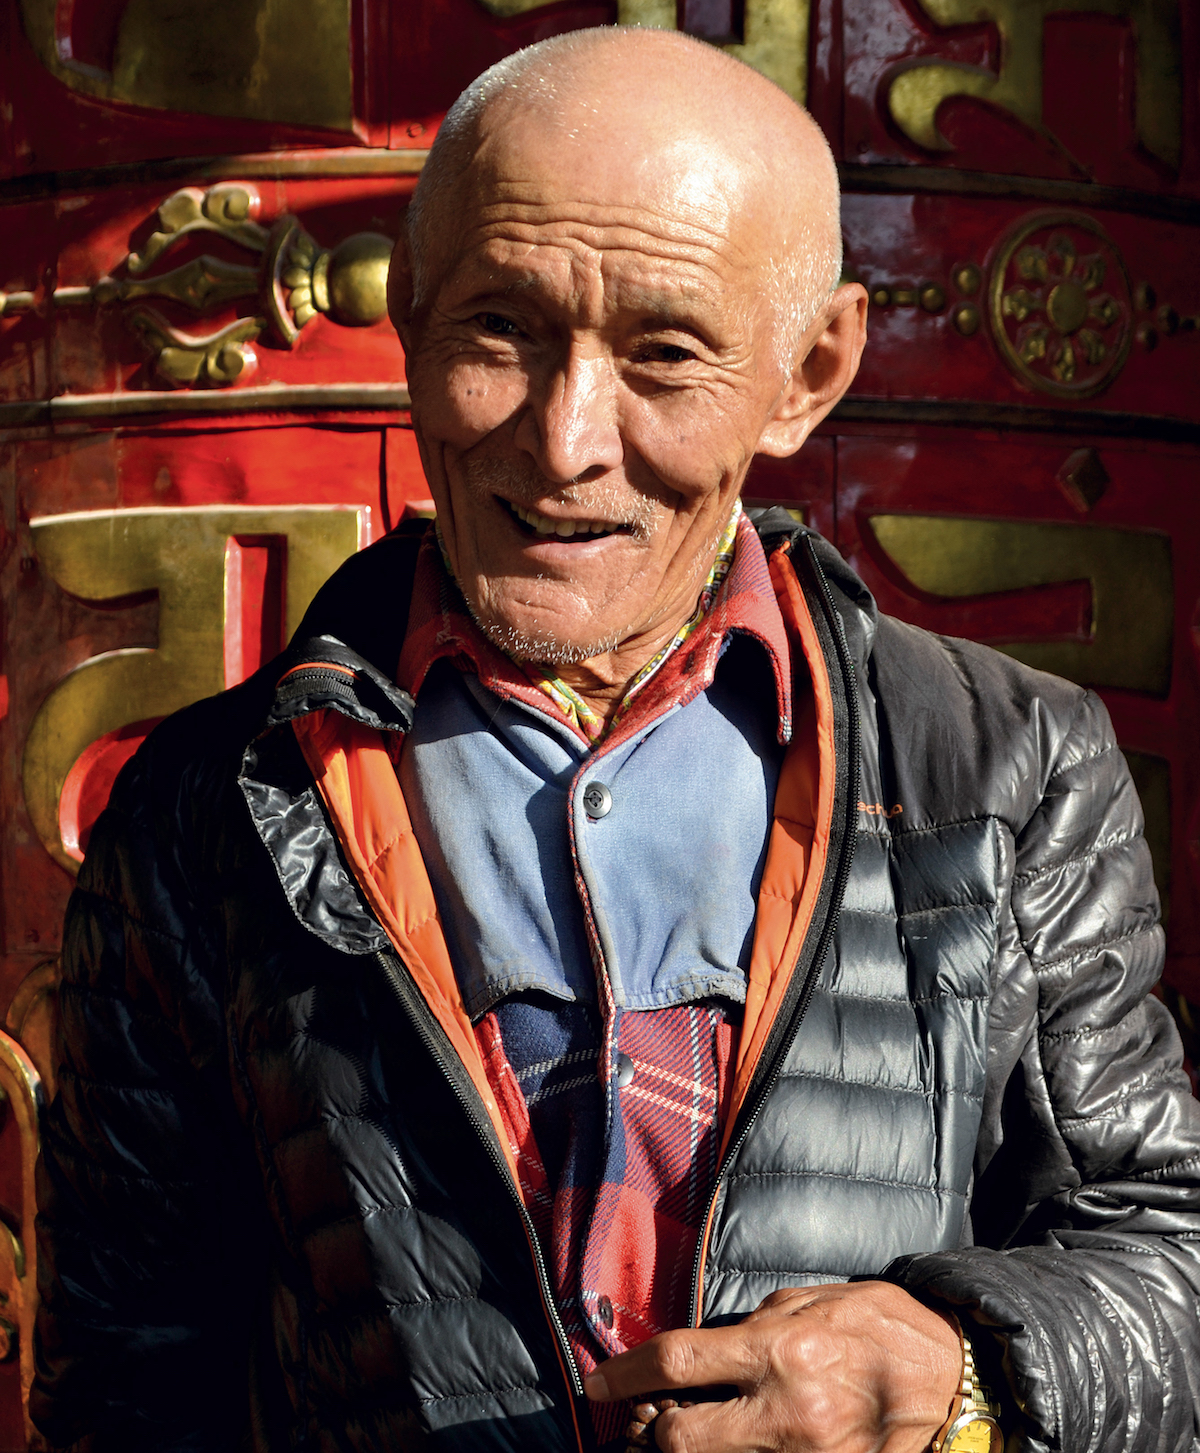 Lopsang Tshering Sherpa recalls small perks from mountaineering work: I often came back with clothes that no one else had in Kathmandu. He drank so much tea on expeditions that he was called Tea Lopsang. Now, he grows tea in his village, where everyone calls him Chiya Baje (Grandpa Tea). [Photo] Kapil Bisht